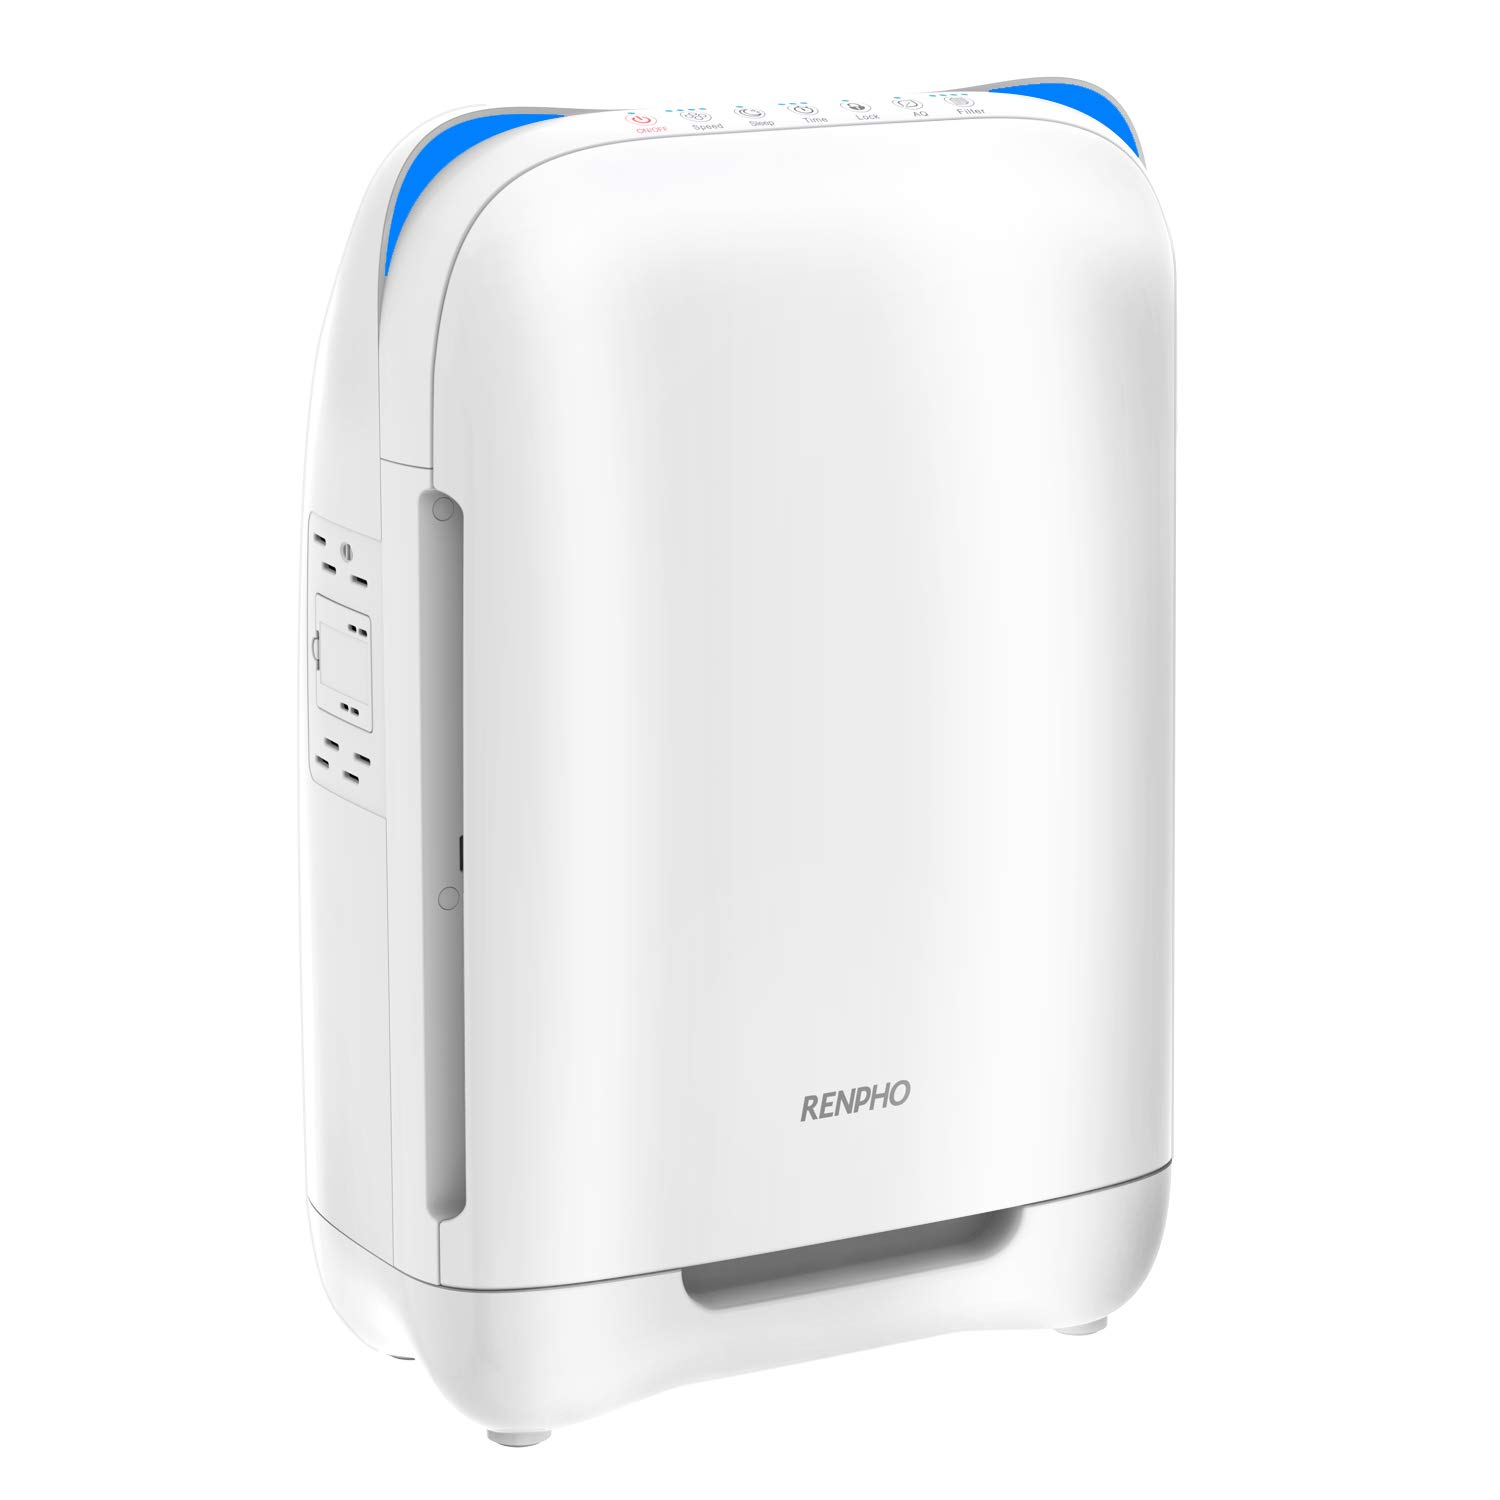 RENPHO Air Purifier for Home Large Room,HEPA Filter Air Purifier for Allergies and Pets,Air Cleaners for Bedroom, Traps Allergens, Smoke, Odors, Mold, Dust, Germs, Pet Dander